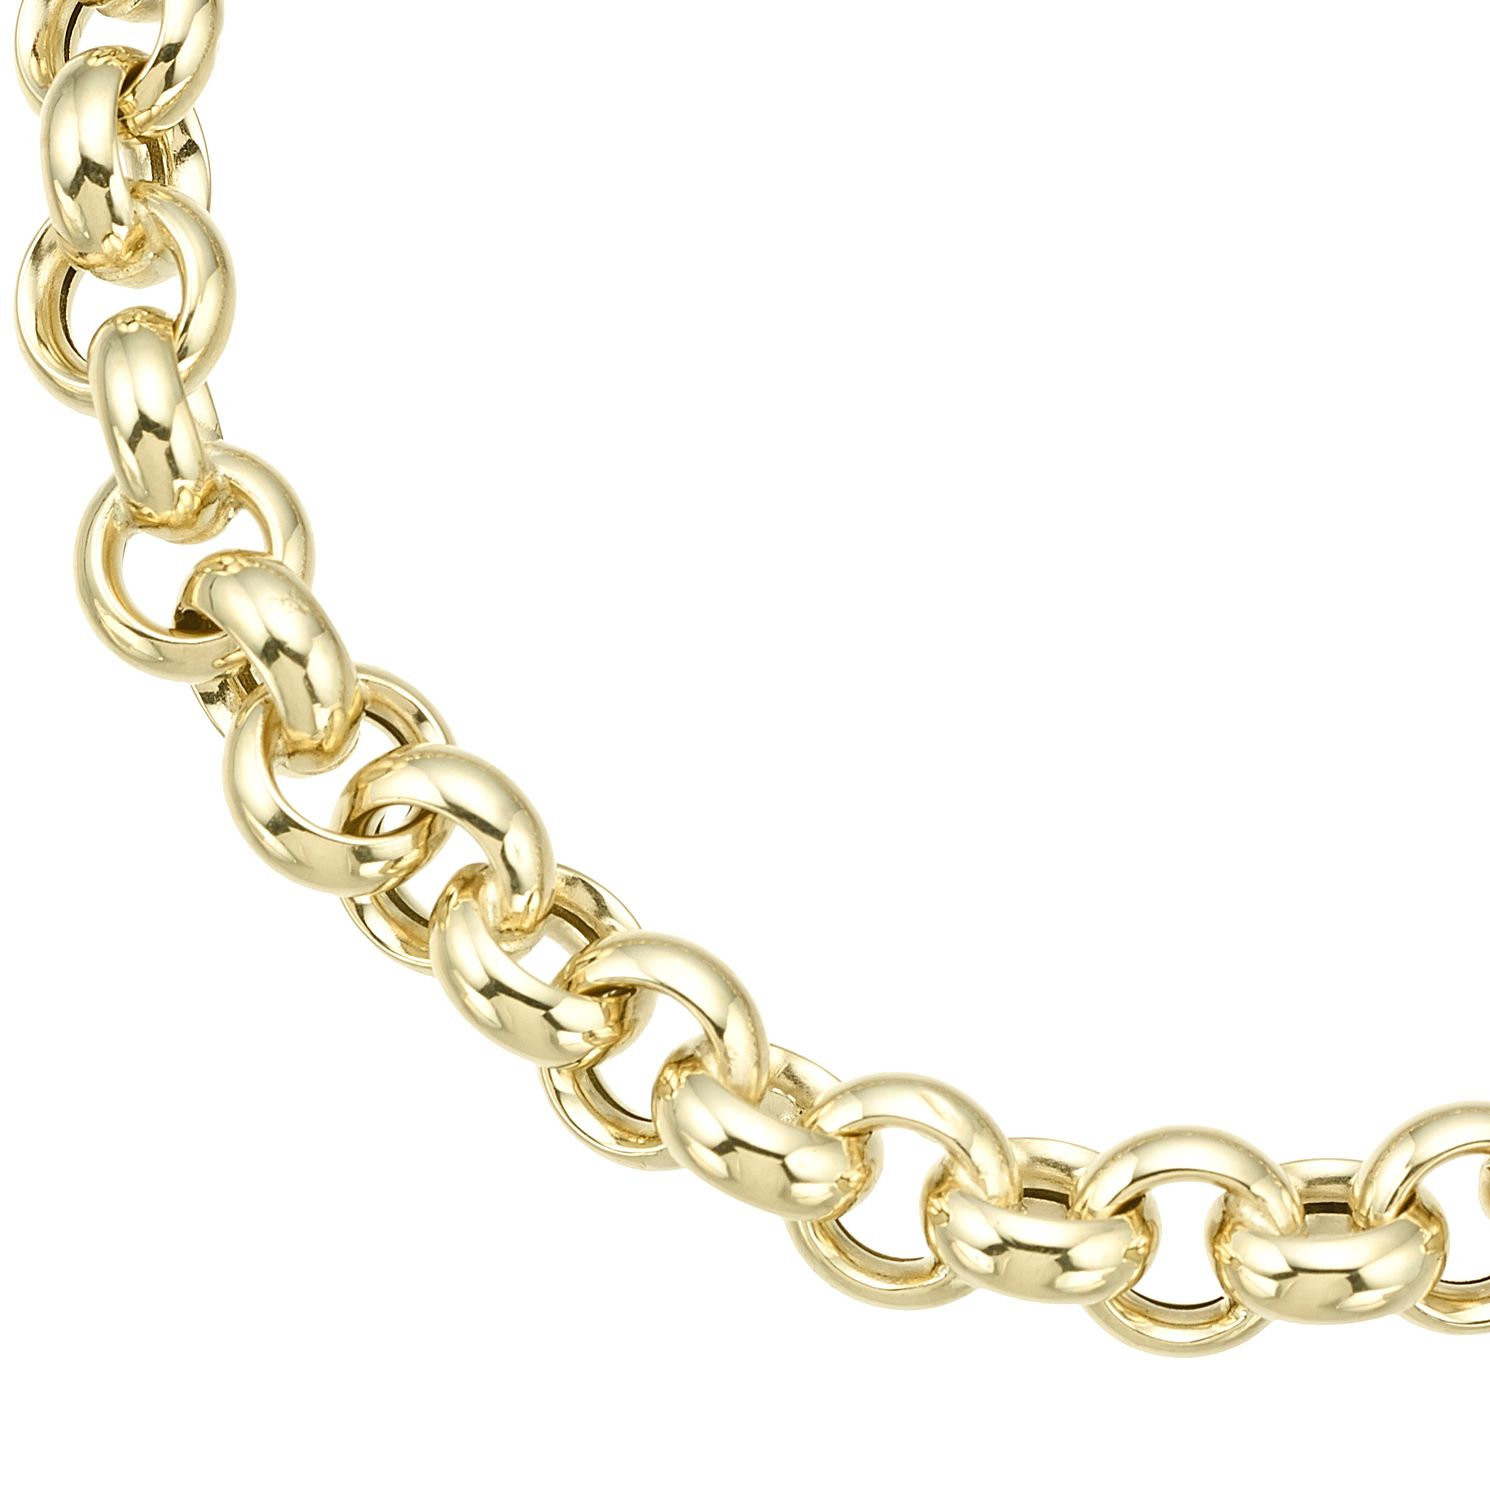 9ct Yellow Gold Large Belcher Chain Bracelet - Product number 8109192